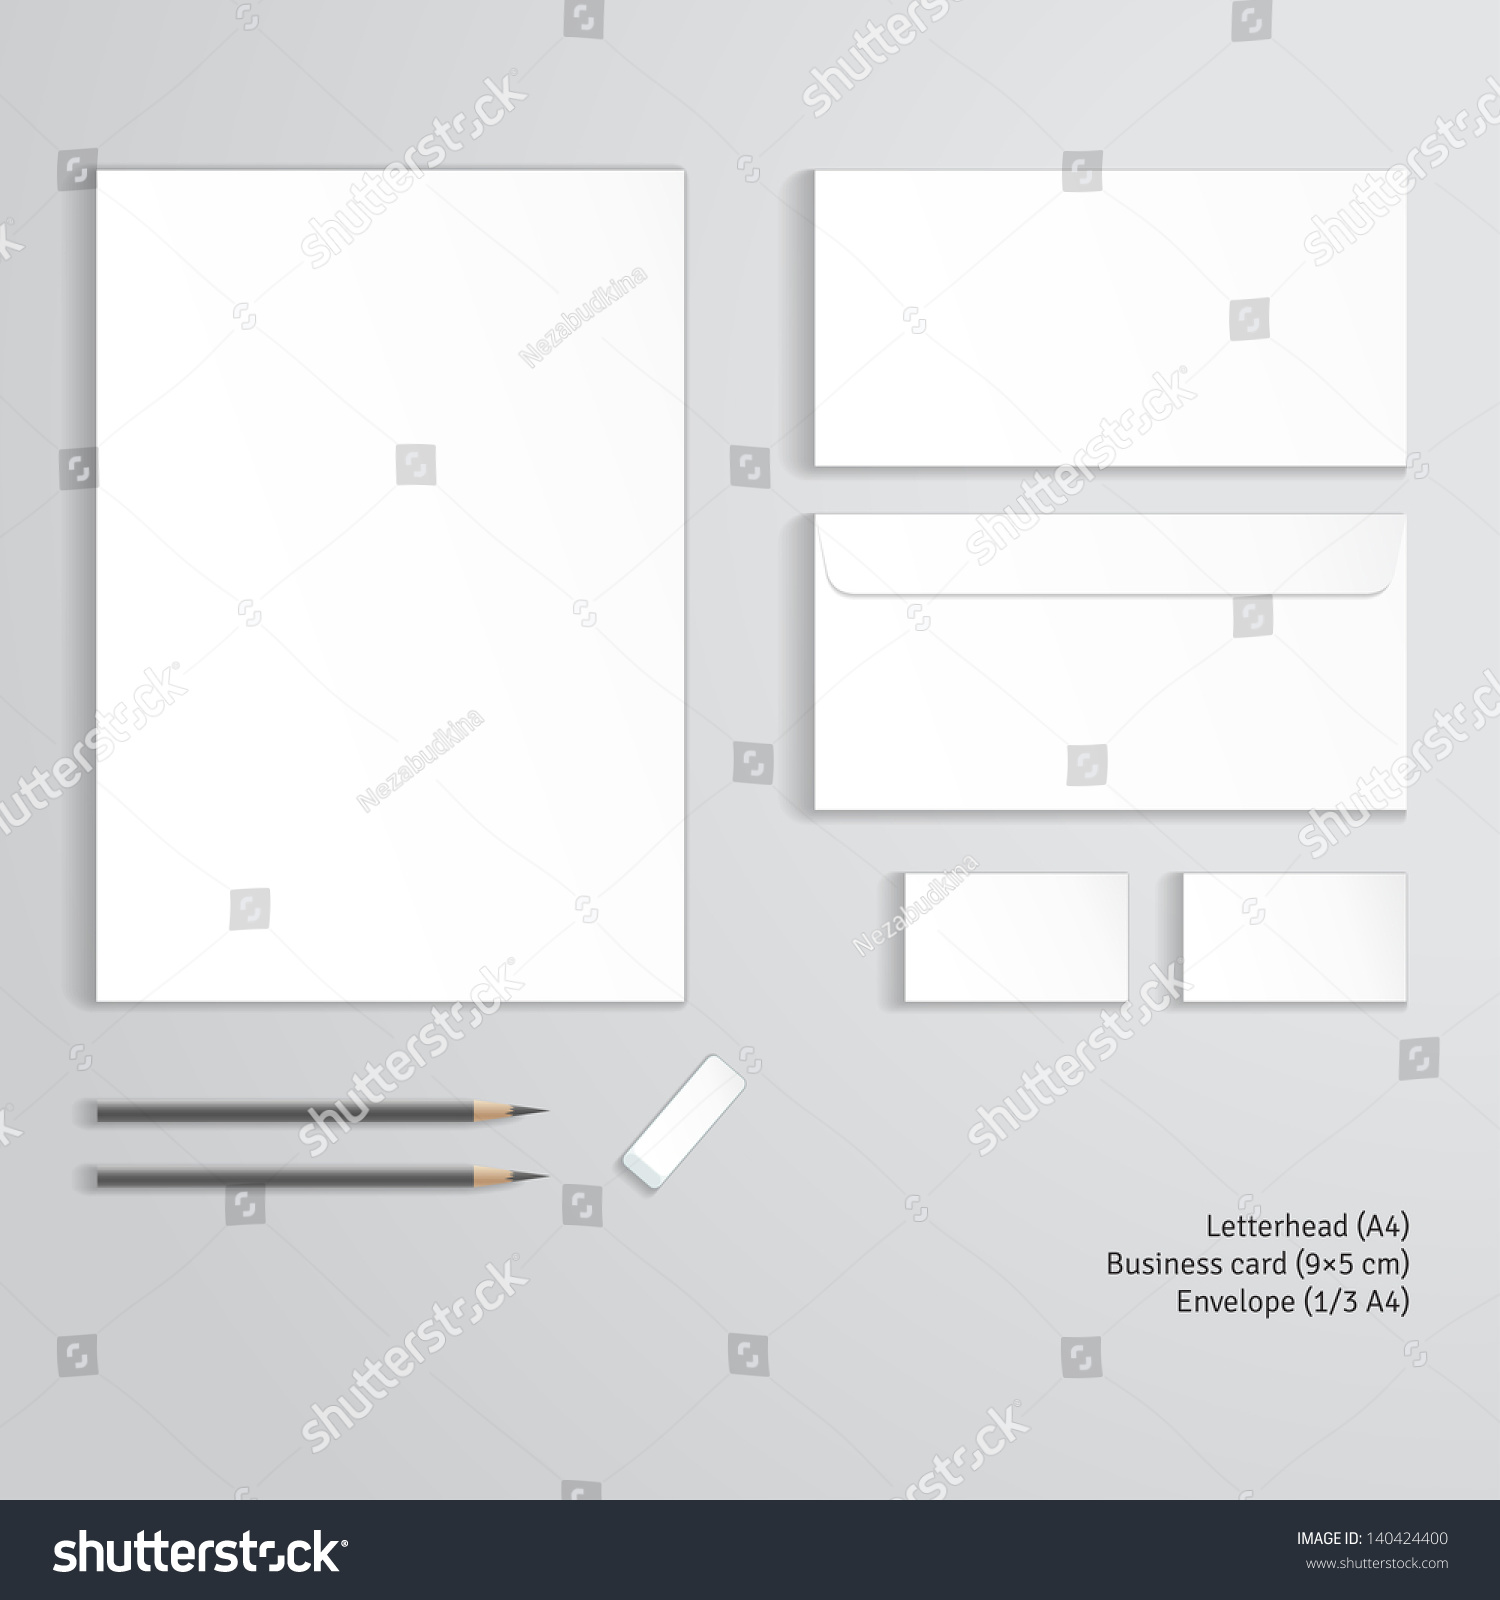 Letterhead Envelopes: Vector Corporate Identity Templates. Letterhead, Envelope